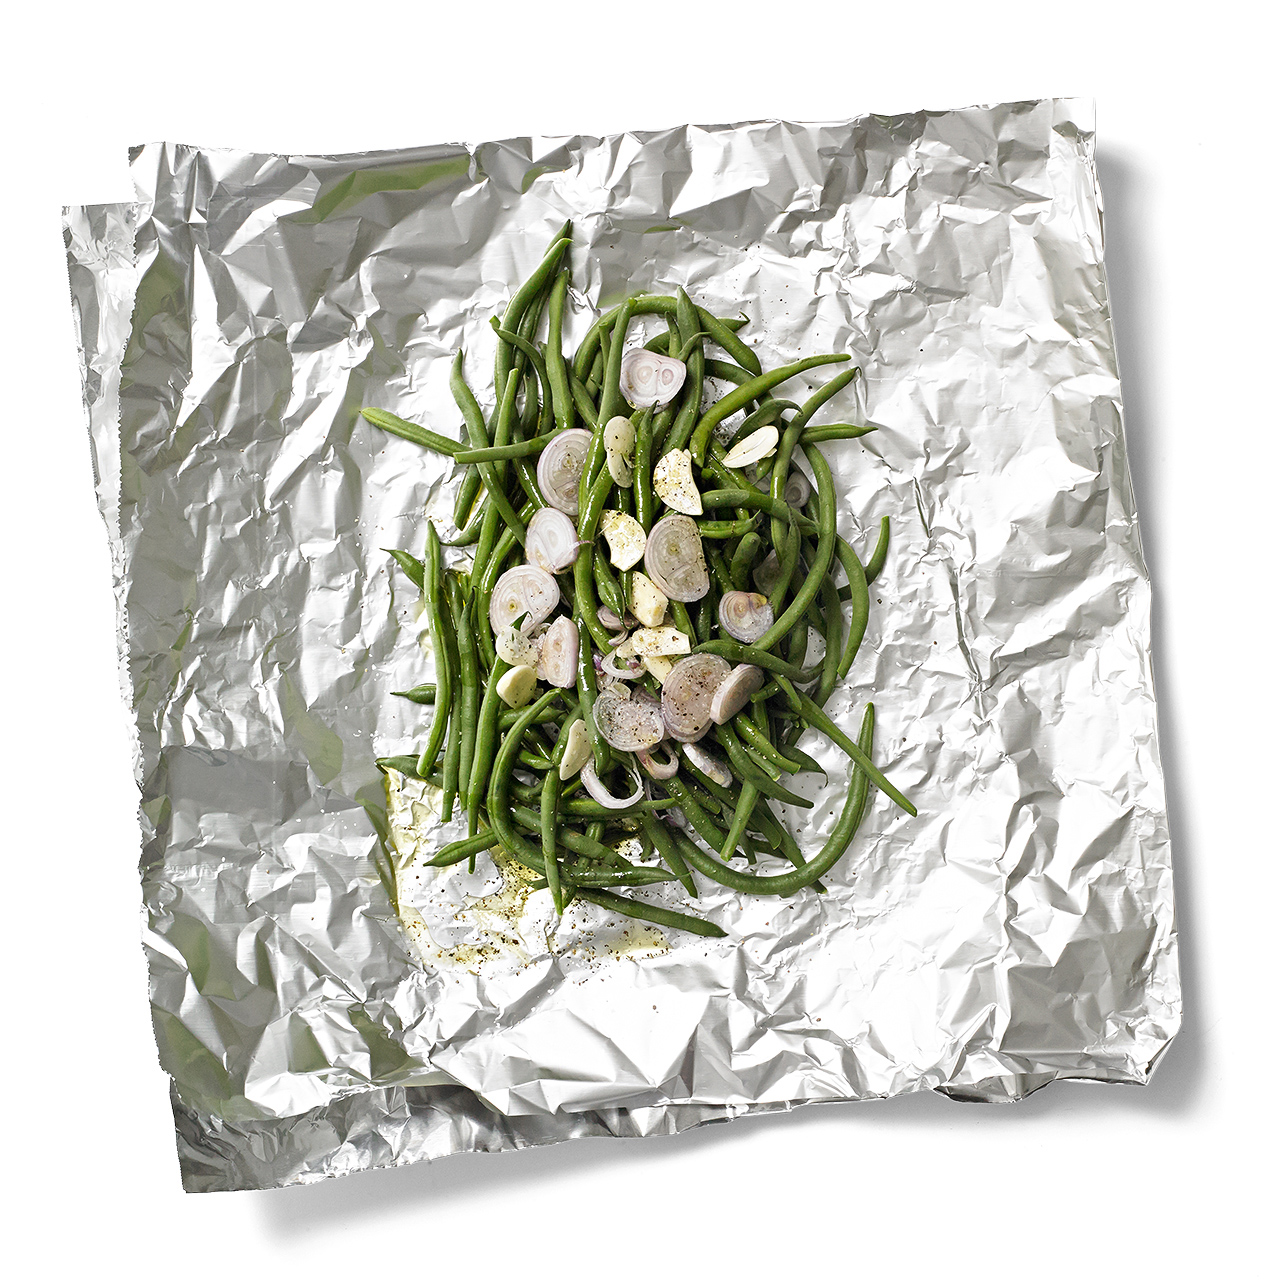 Green onions and slices of shallot on a large piece of foil to make a foil pack for grilling.